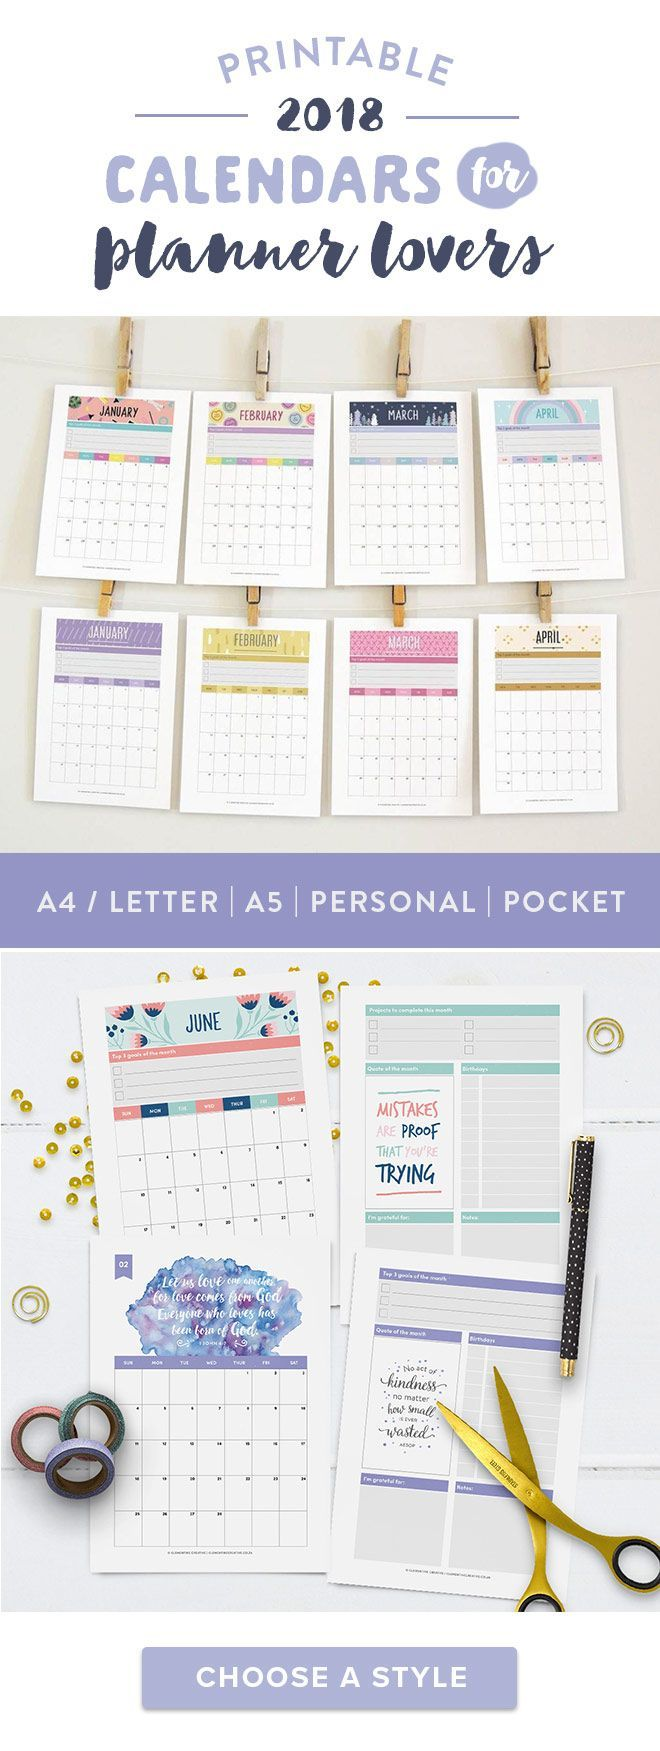 Printable 2018 calendars for planner lovers. Make the best of every month - keep track of your monthly goals, projects, bills and more. Choose between Regular binder size (A4 / Letter), A5, Personal and Pocket sizes. Click here to choose a 2018 calendar design that fits your style!